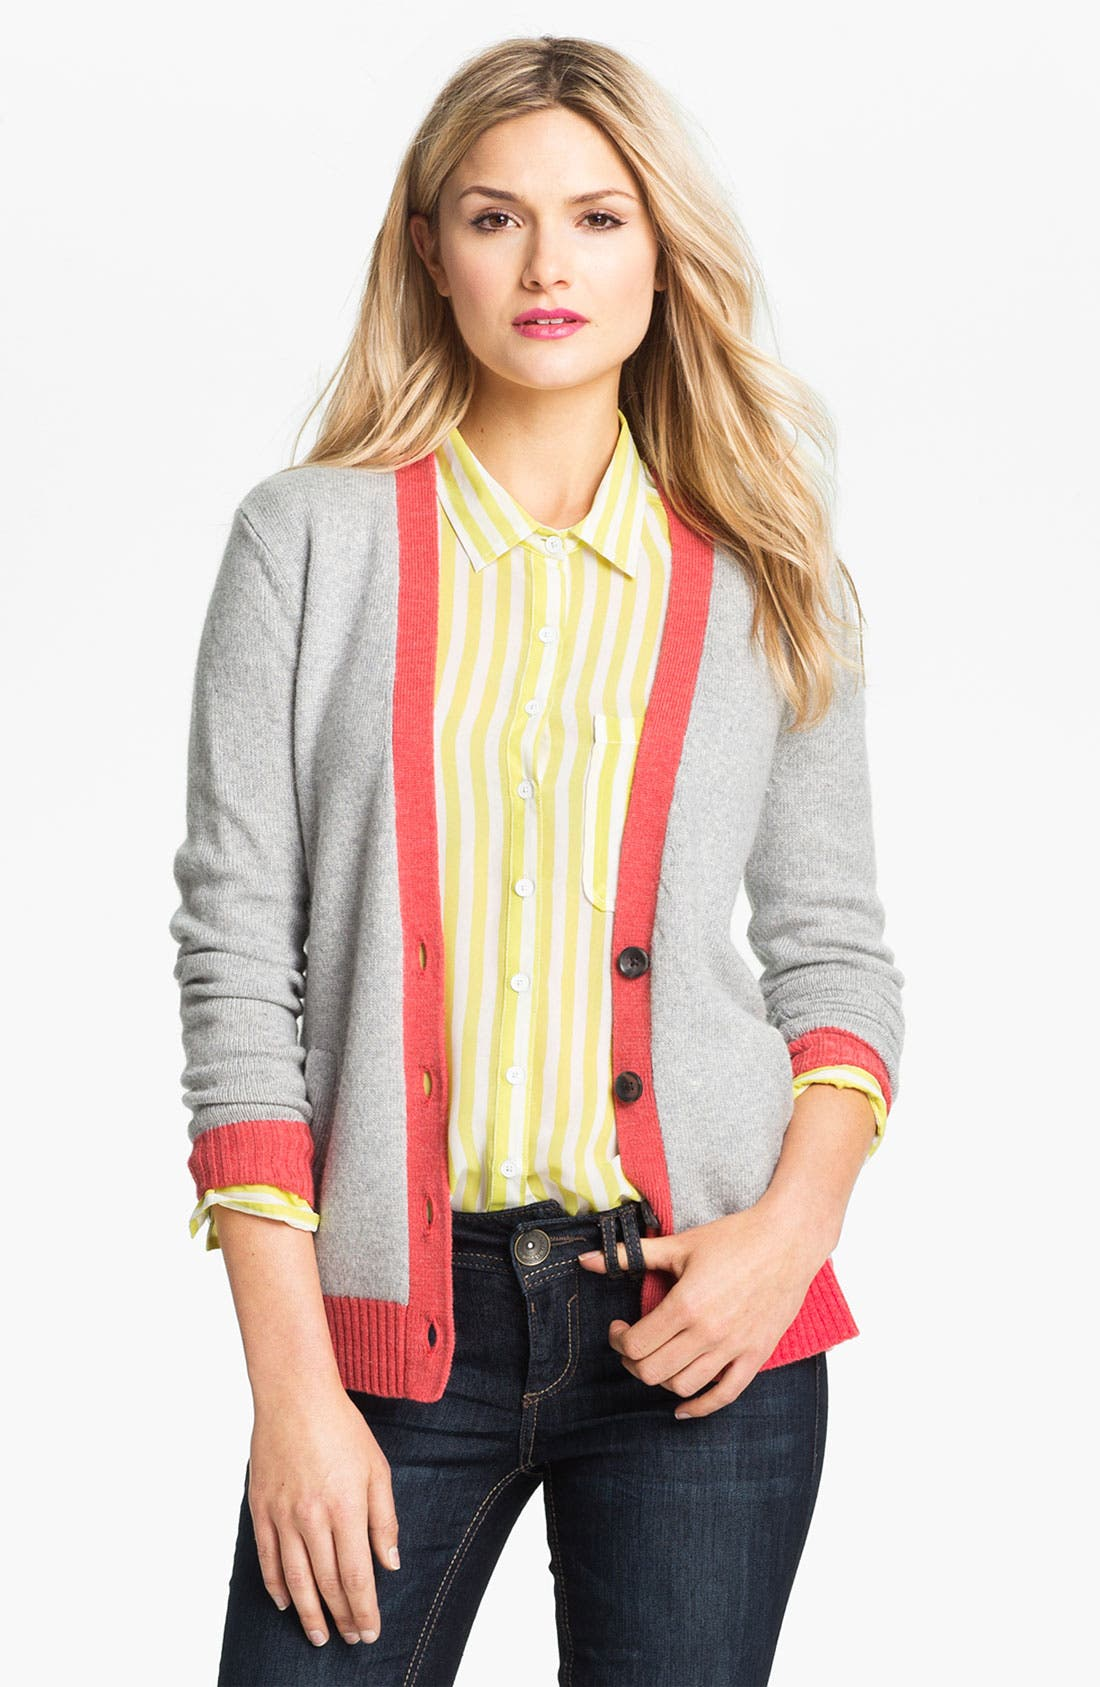 Alternate Image 1 Selected - Caslon Tipped V-Neck Cardigan (Petite)